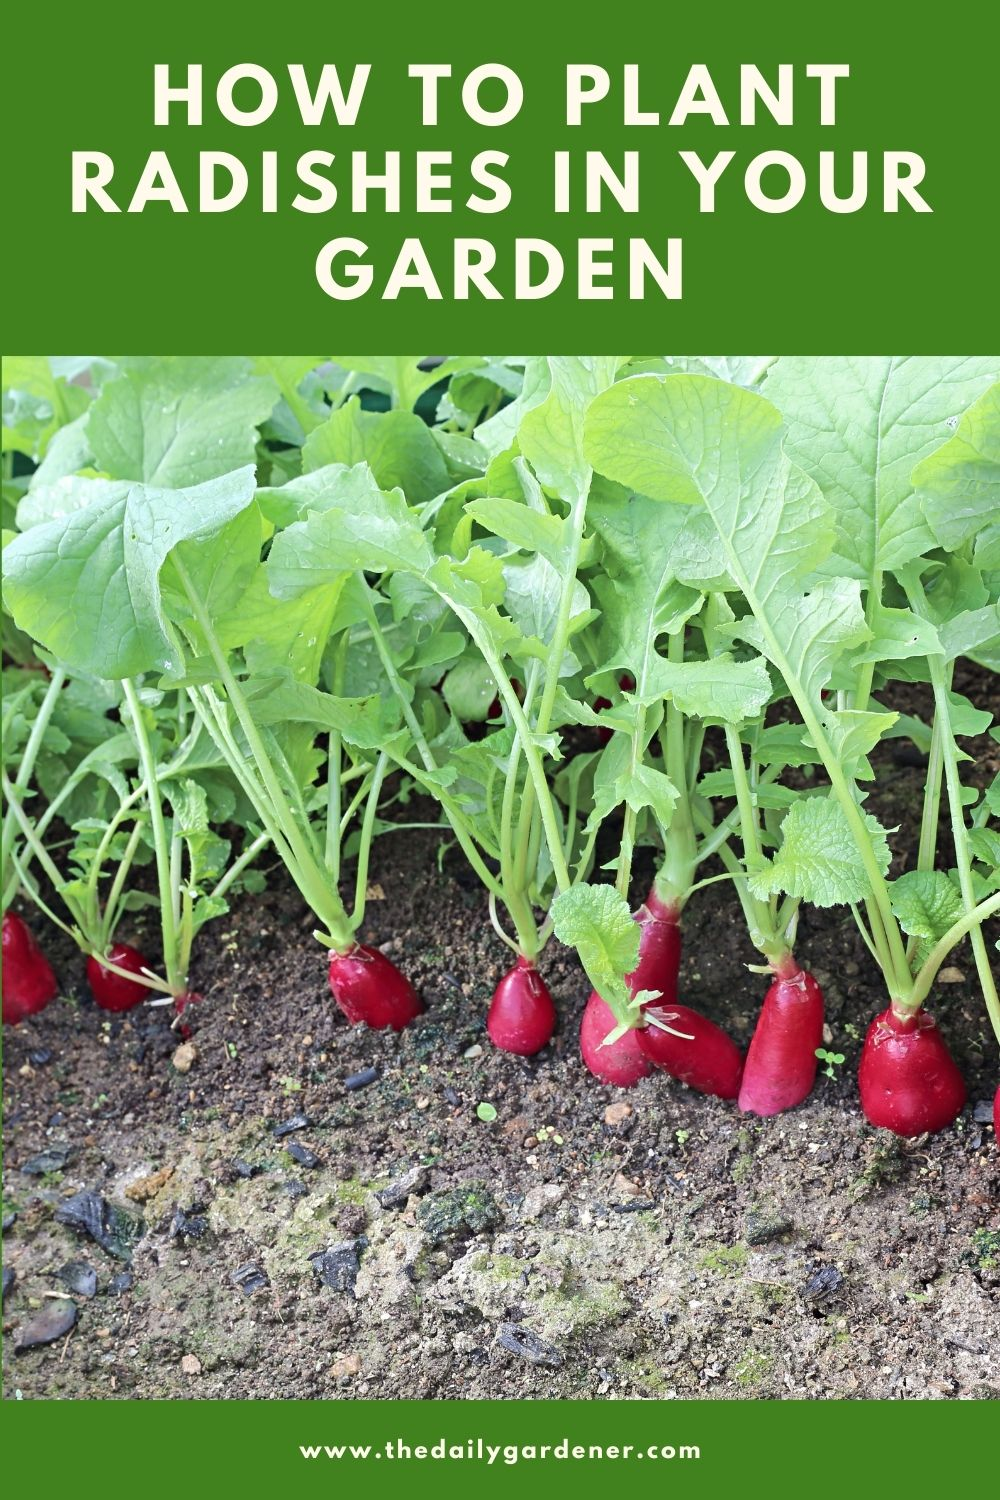 How to Plant Radishes in Your Garden 2